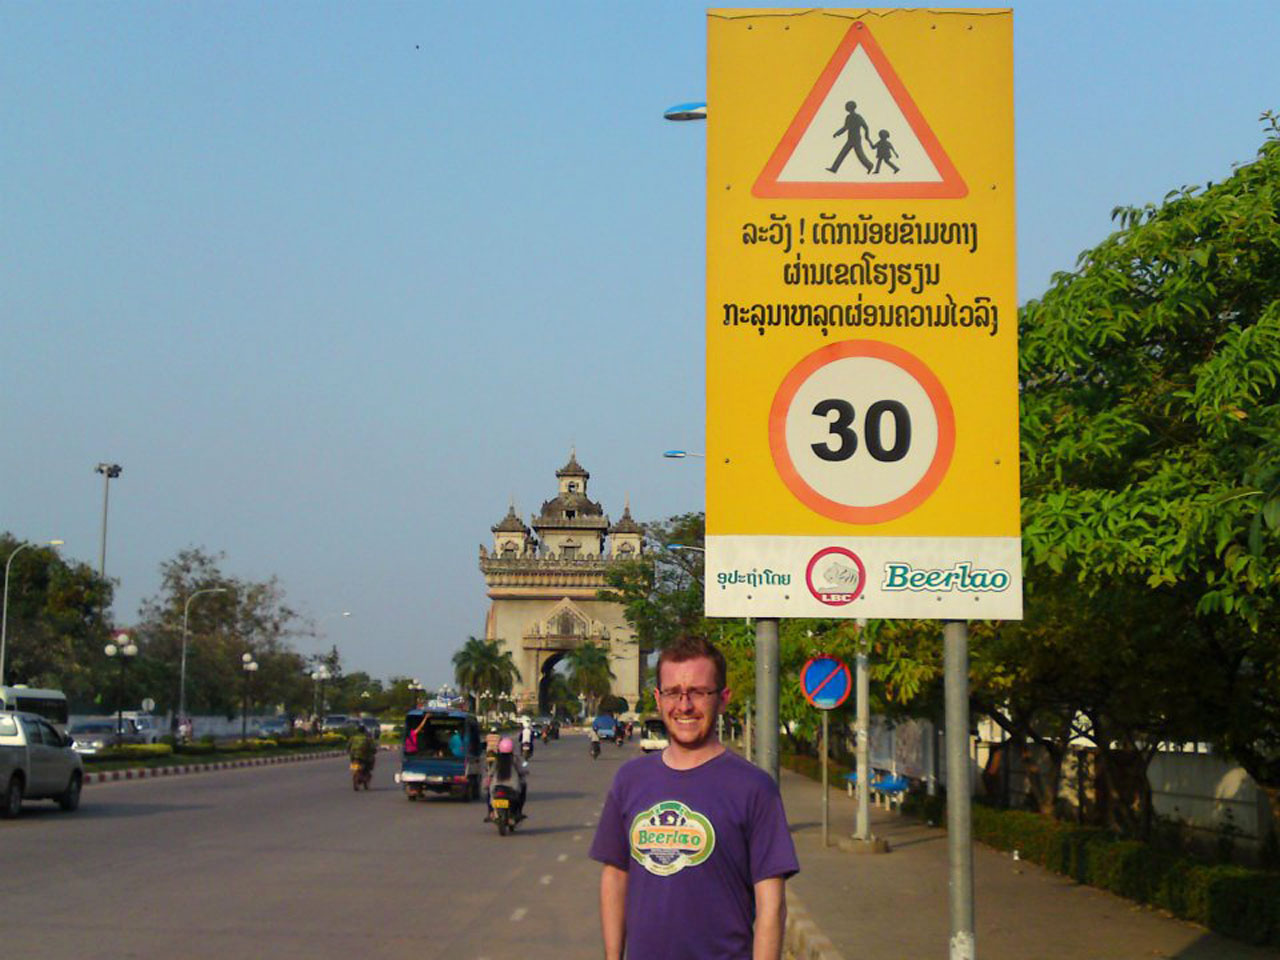 Speed limit sign in Vietiane with advert for Beerlao